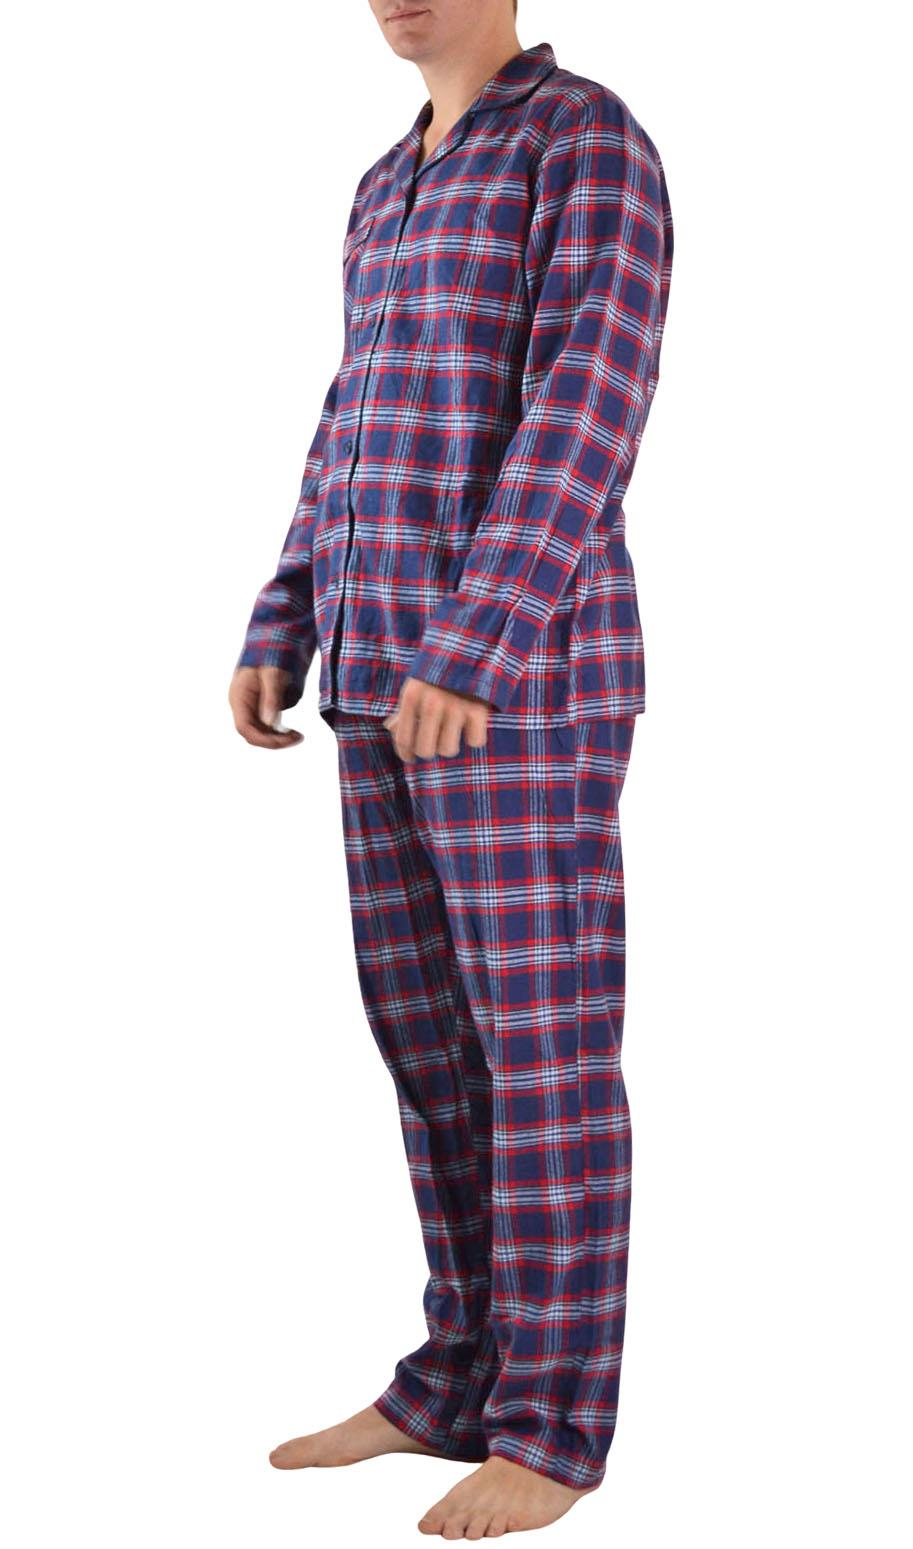 NEW-Mens-Brushed-Pure-Cotton-Check-Pyjamas-Flannelette-PJ-Set-in-Blue-Red-Grey thumbnail 14